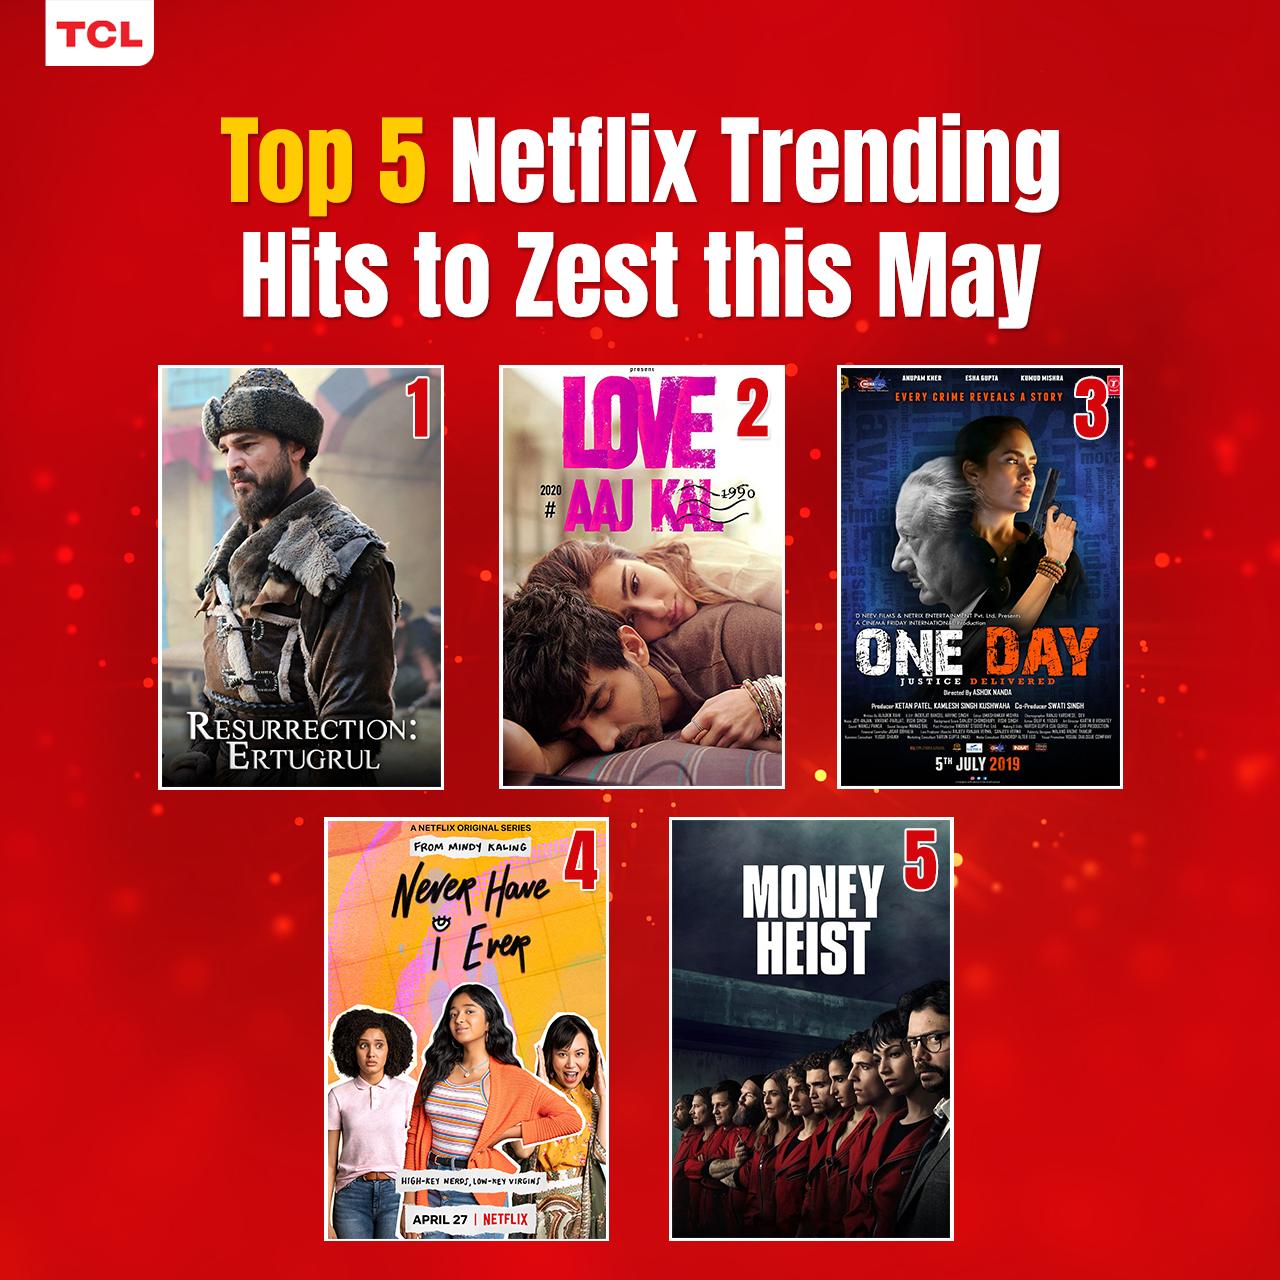 Top 5 Netflix Trending Hits to Zest this May